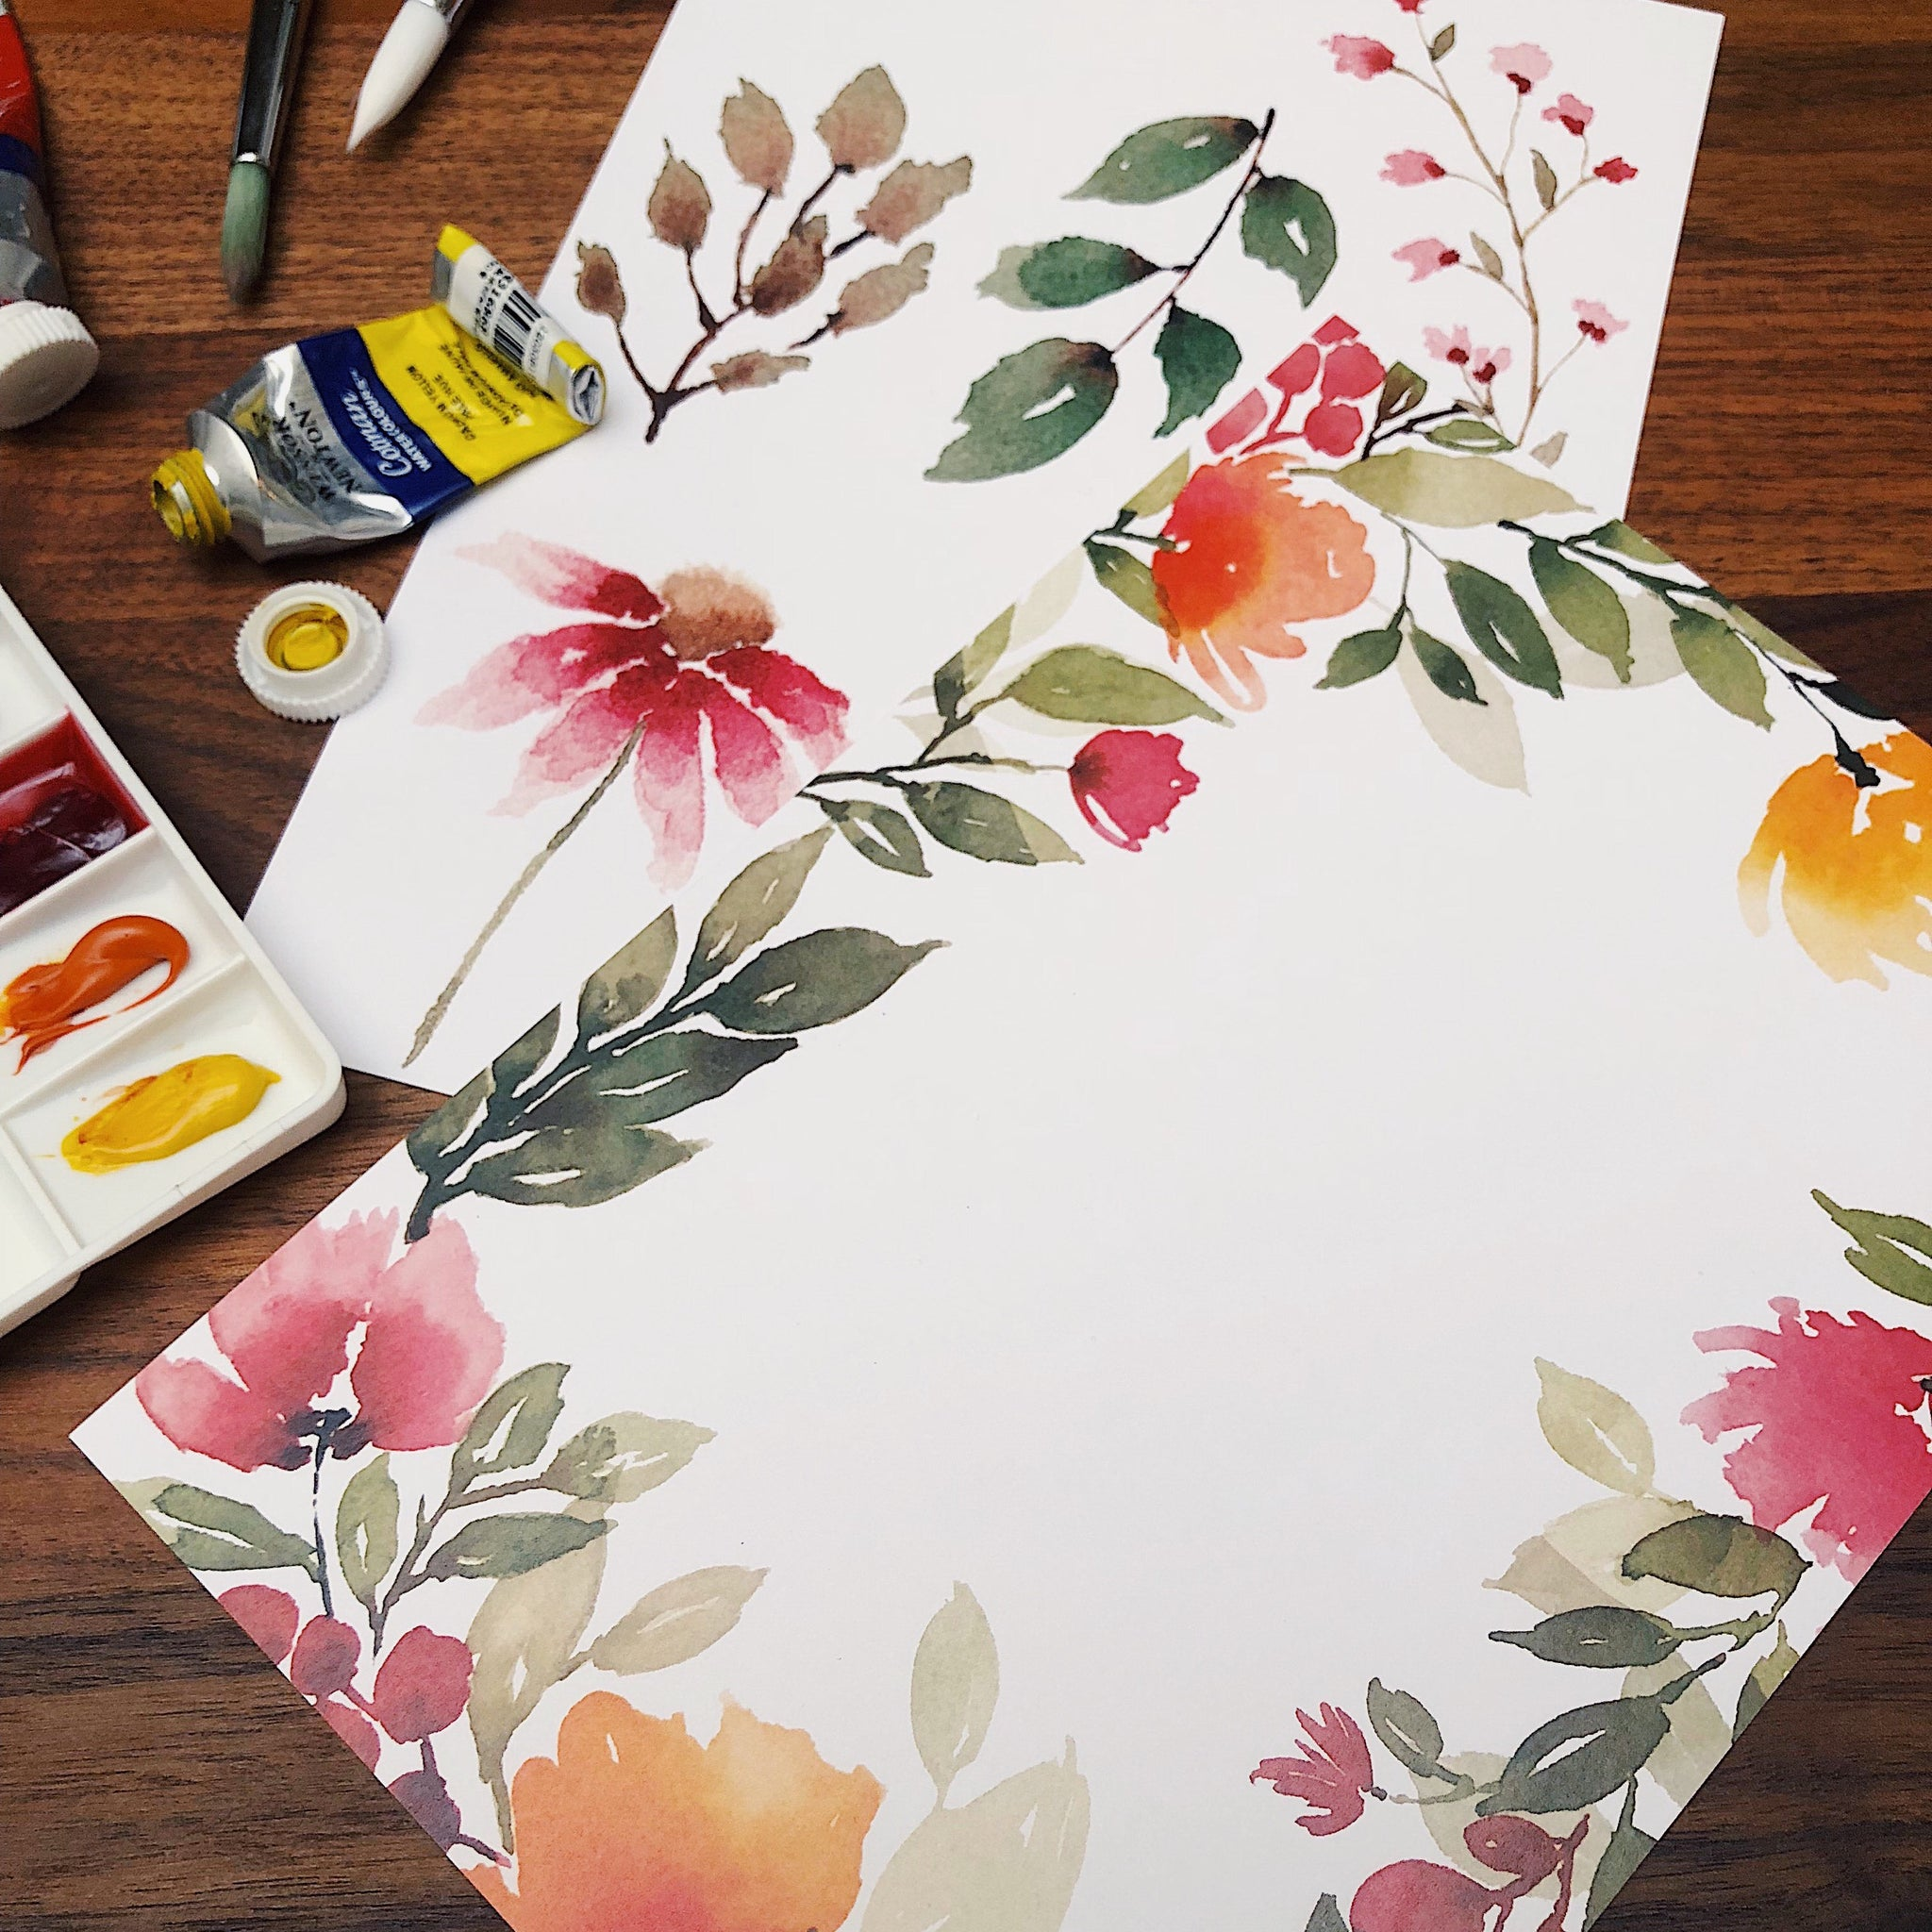 Basic Floral Watercolour / 4 Aug Sat 1300-1600 hrs